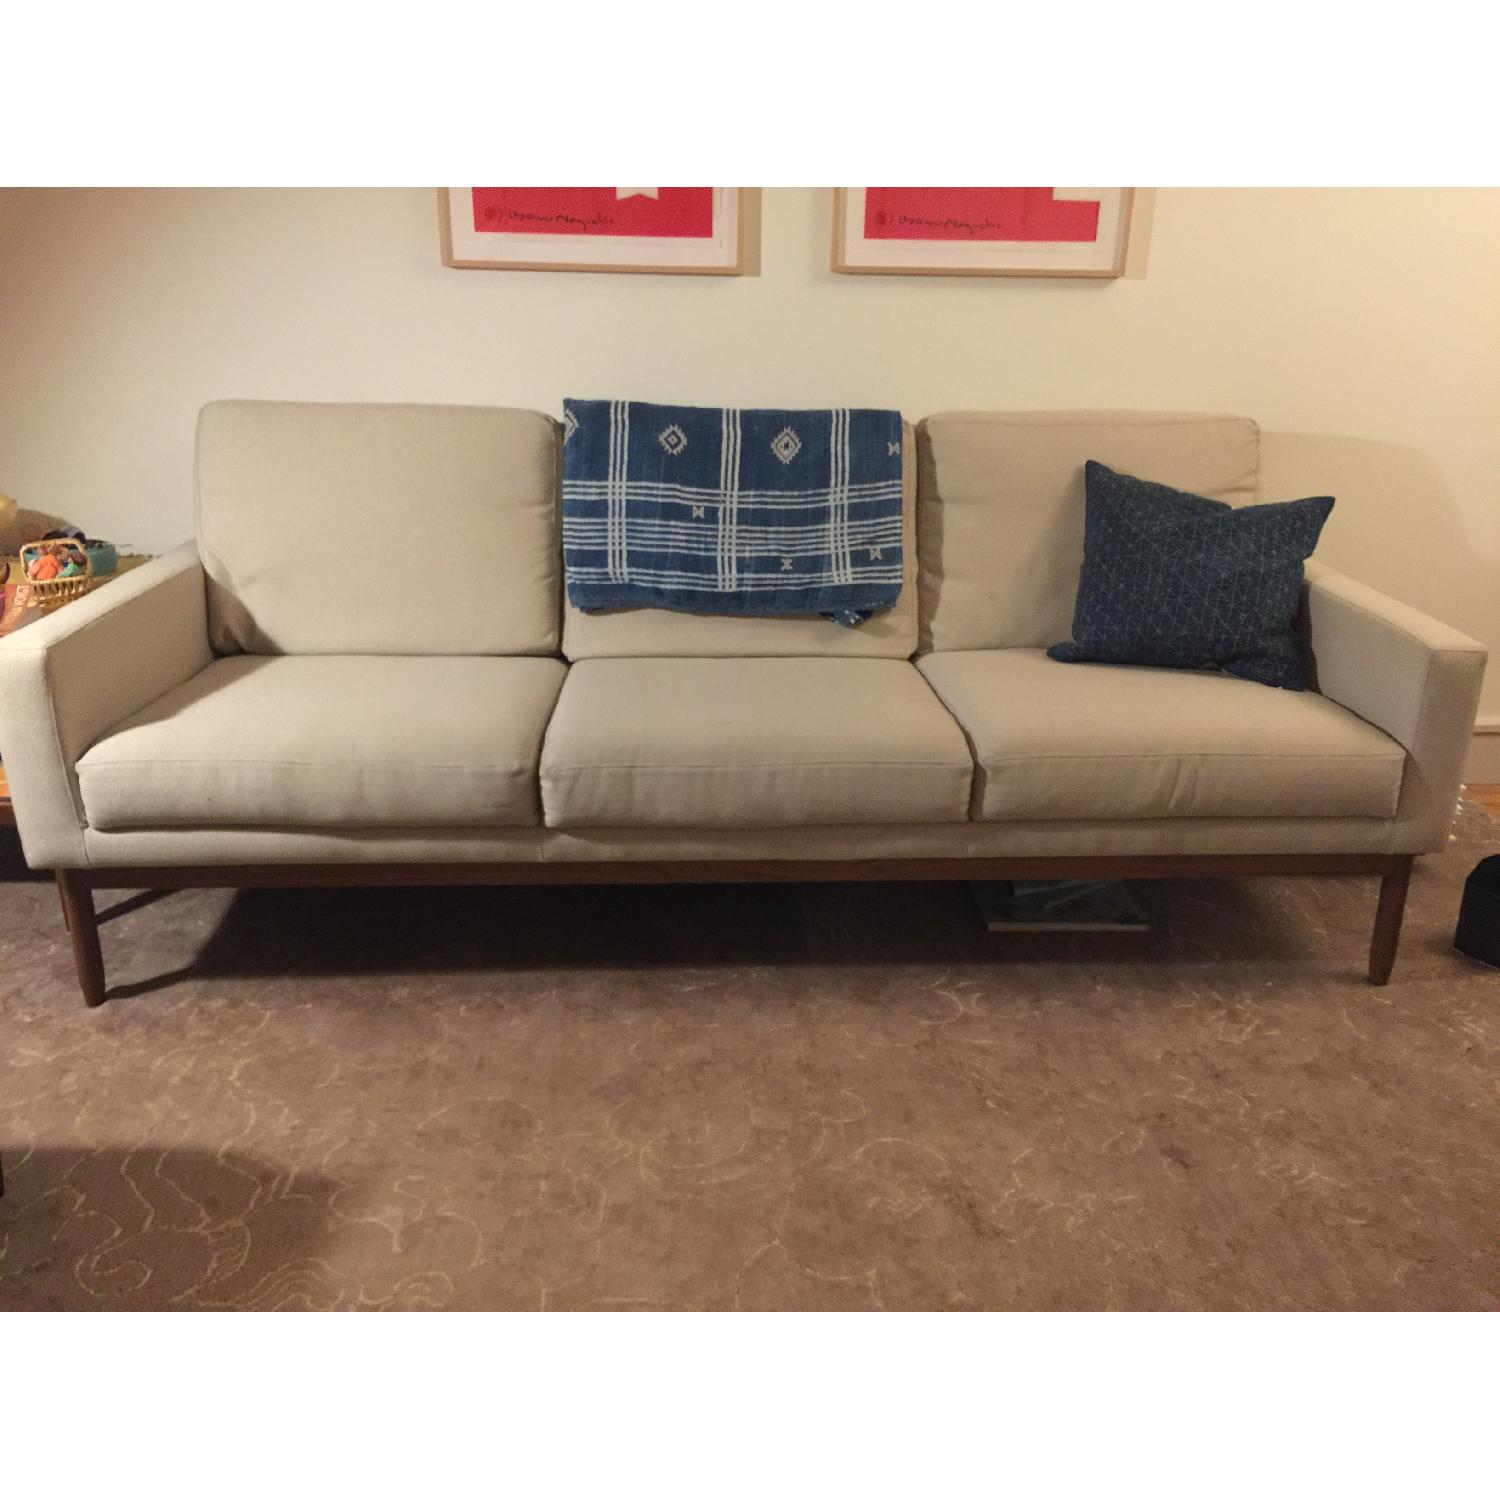 Design Within Reach Raleigh Sofa in Natural - image-3